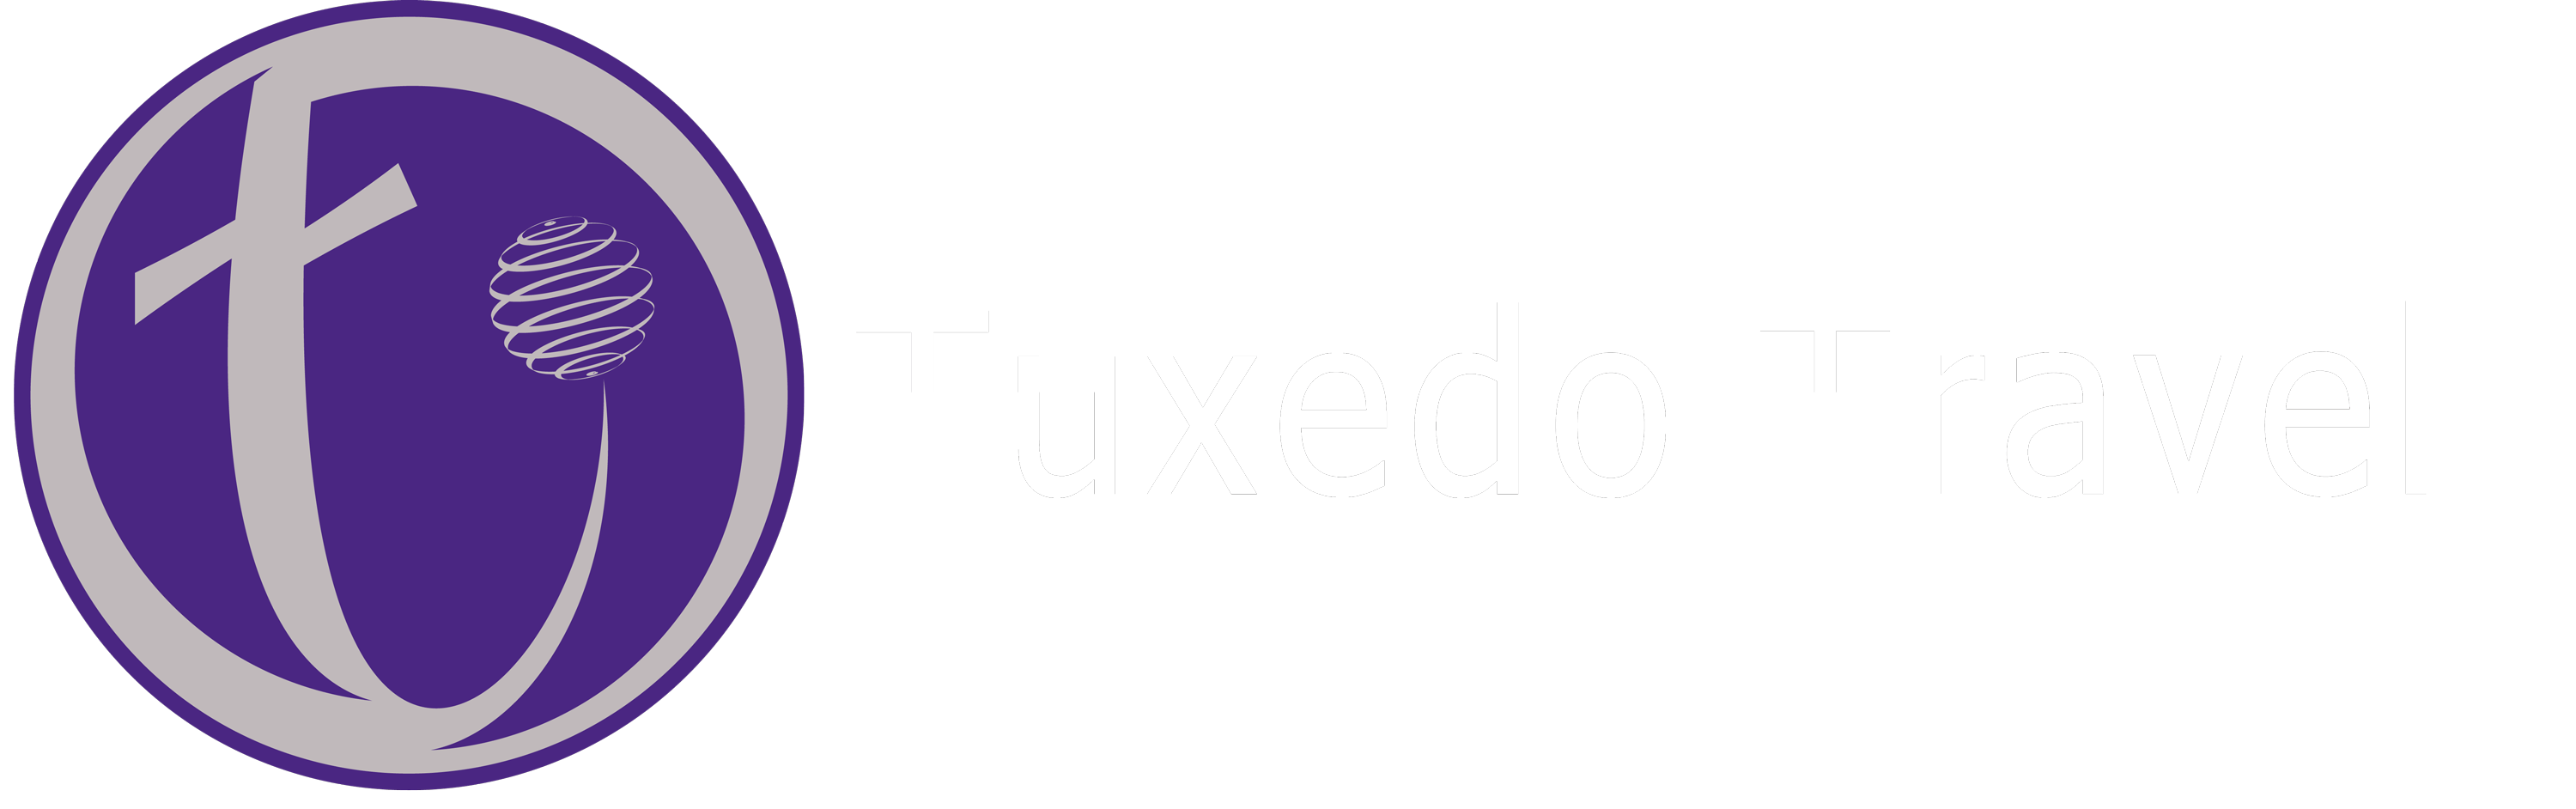 Tuxedo Travel Boarding Pass